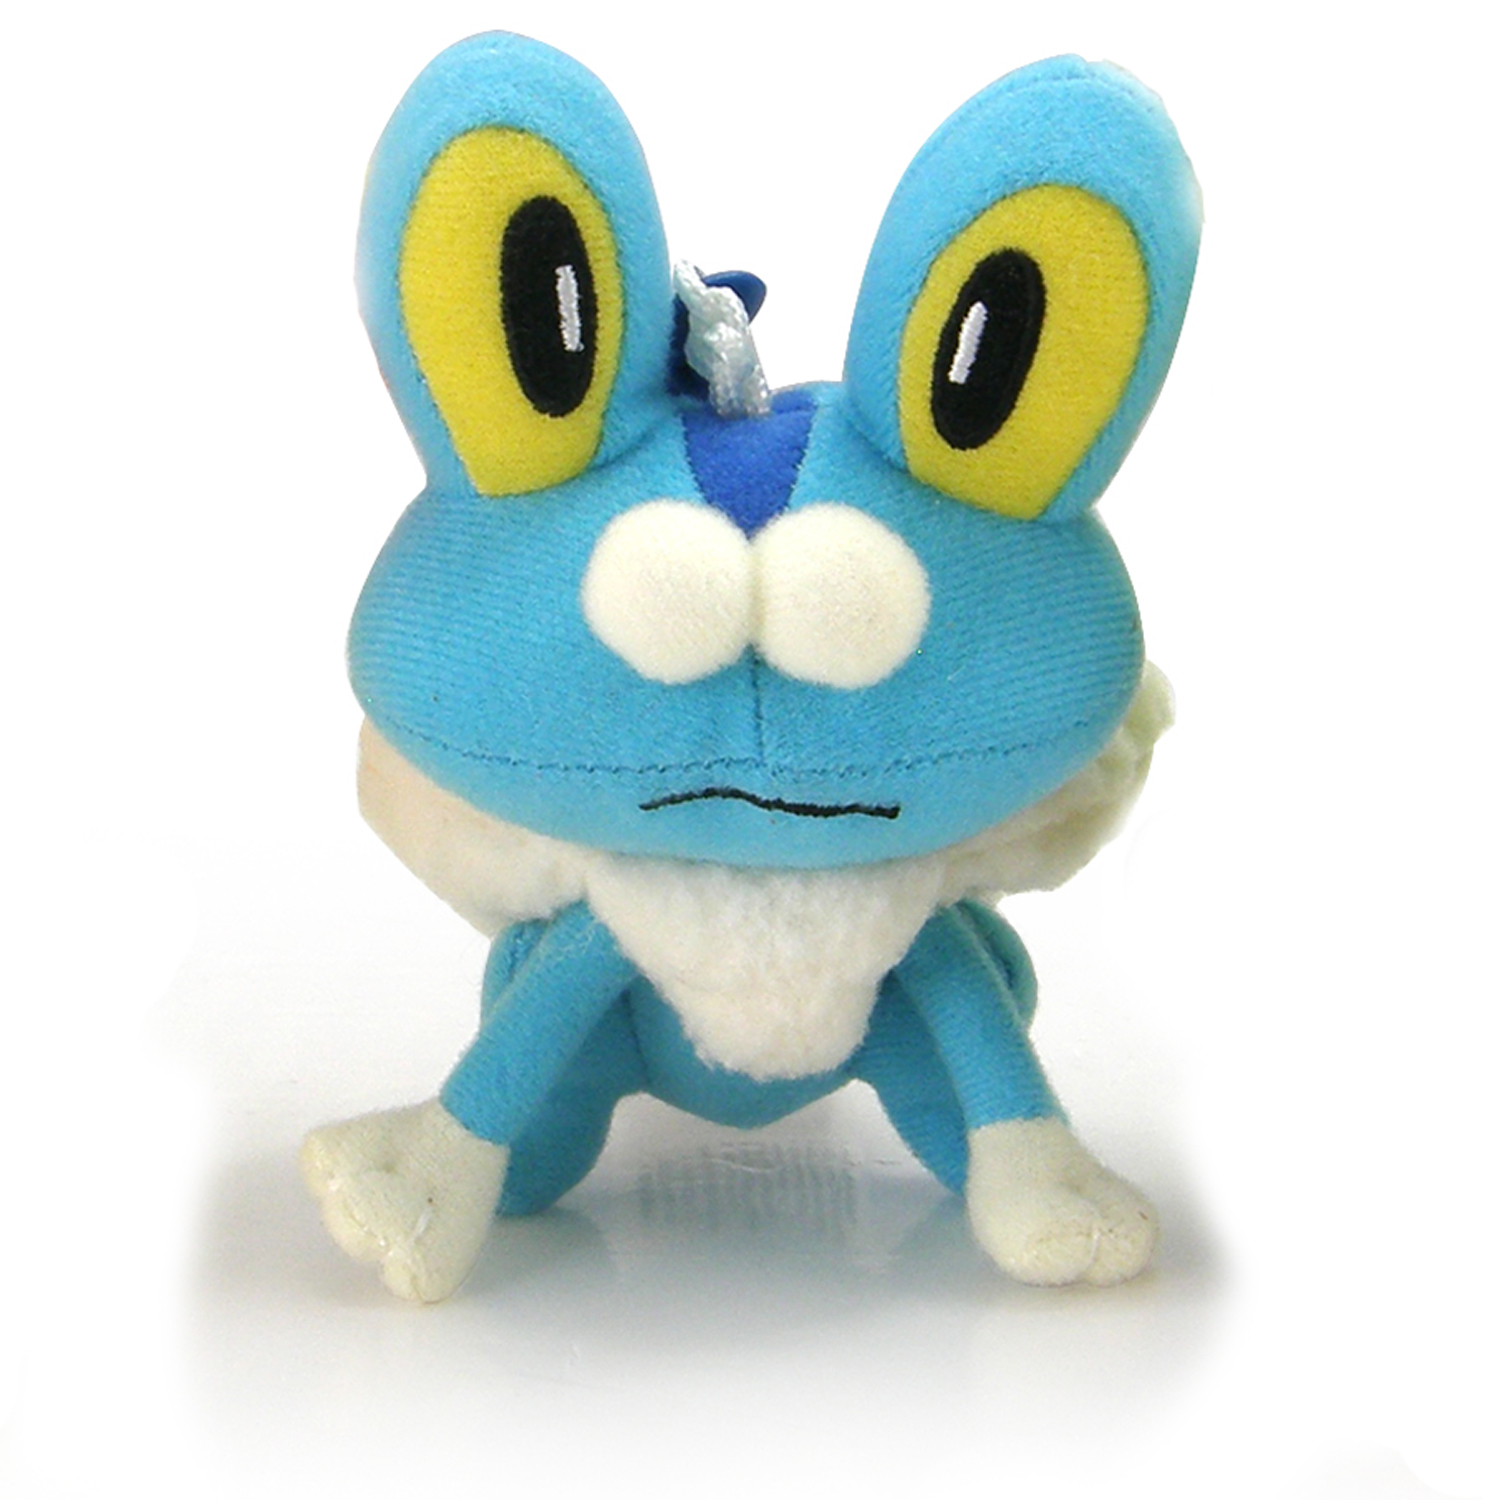 Free coloring page key - Free Coloring Page Key Pokemon Froakie Images Pokemon Images Download